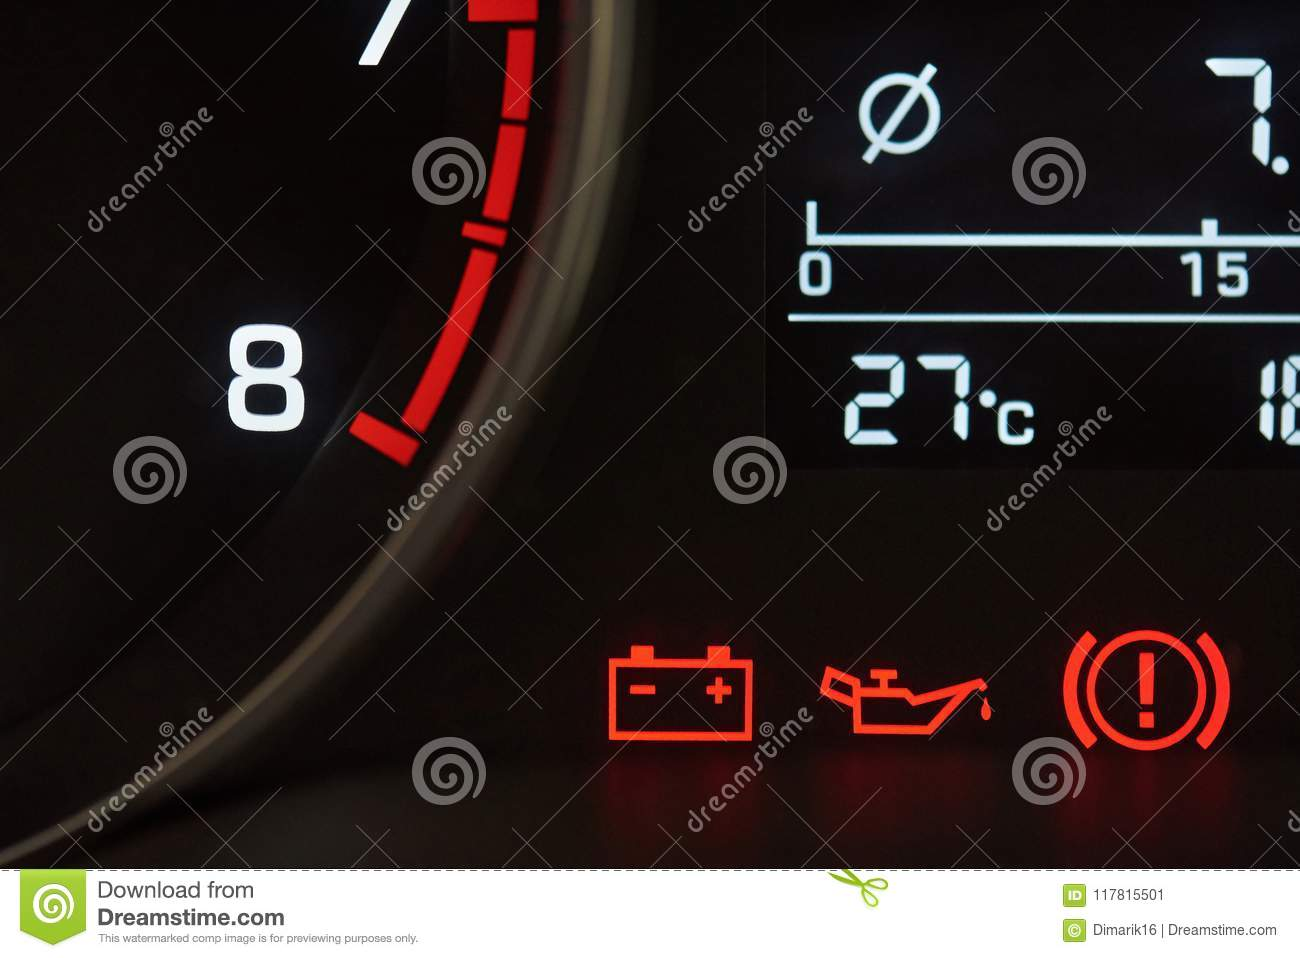 Error Icons On Car Dashboard Stock Image Image Of Lights Concept